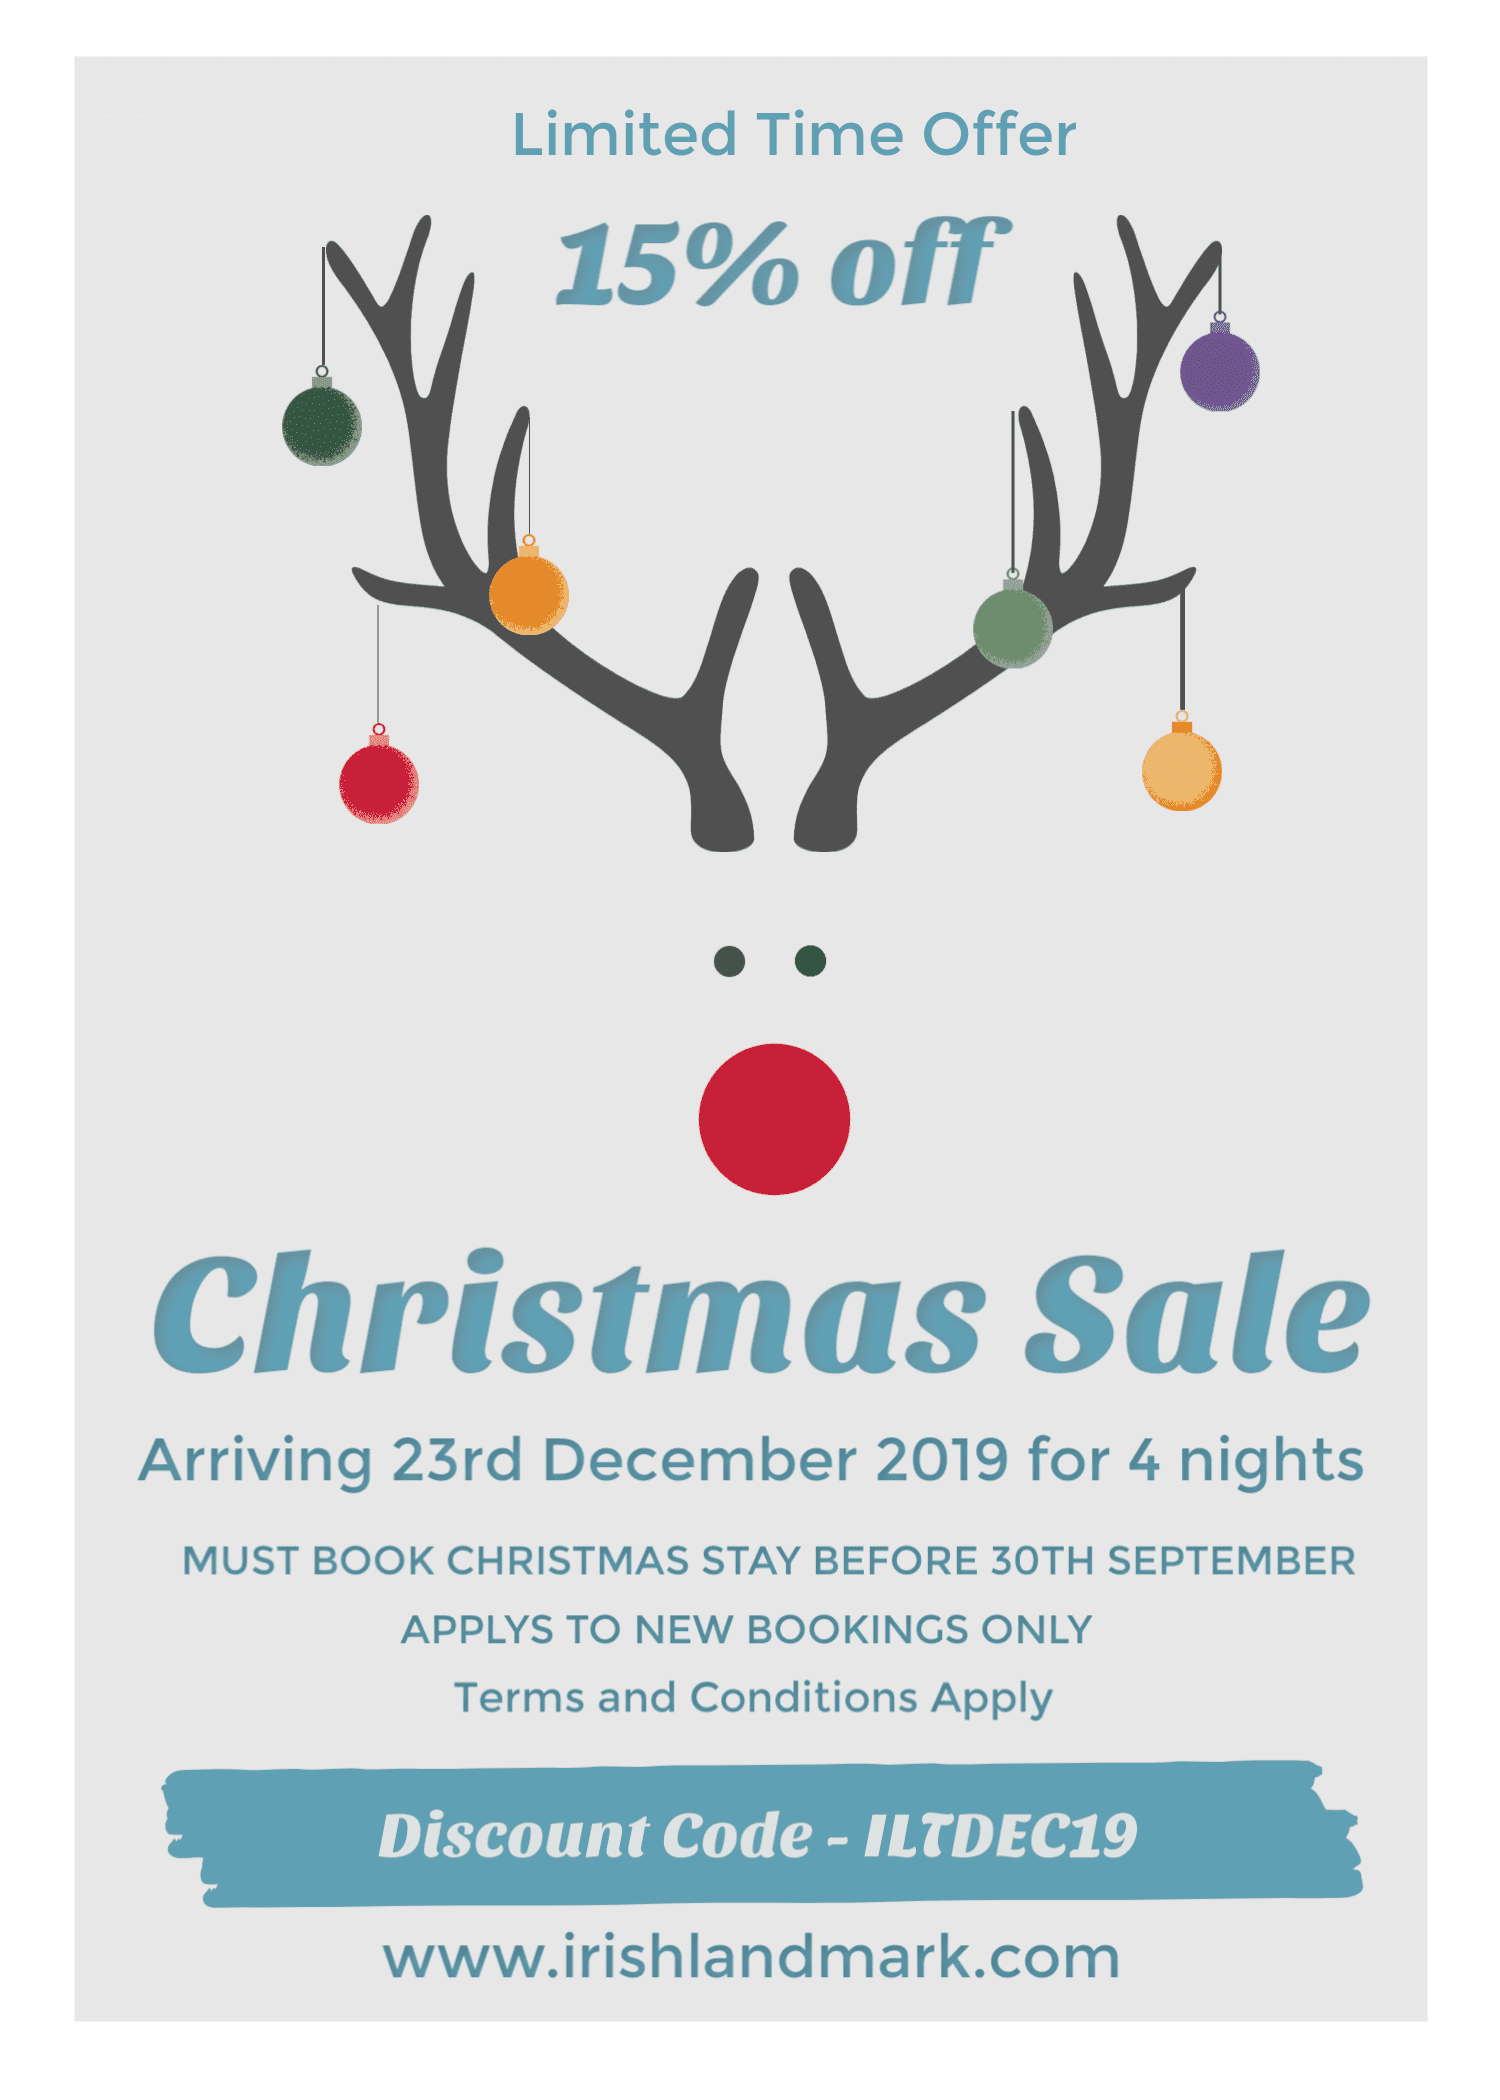 Christmas Sale Limited Offer